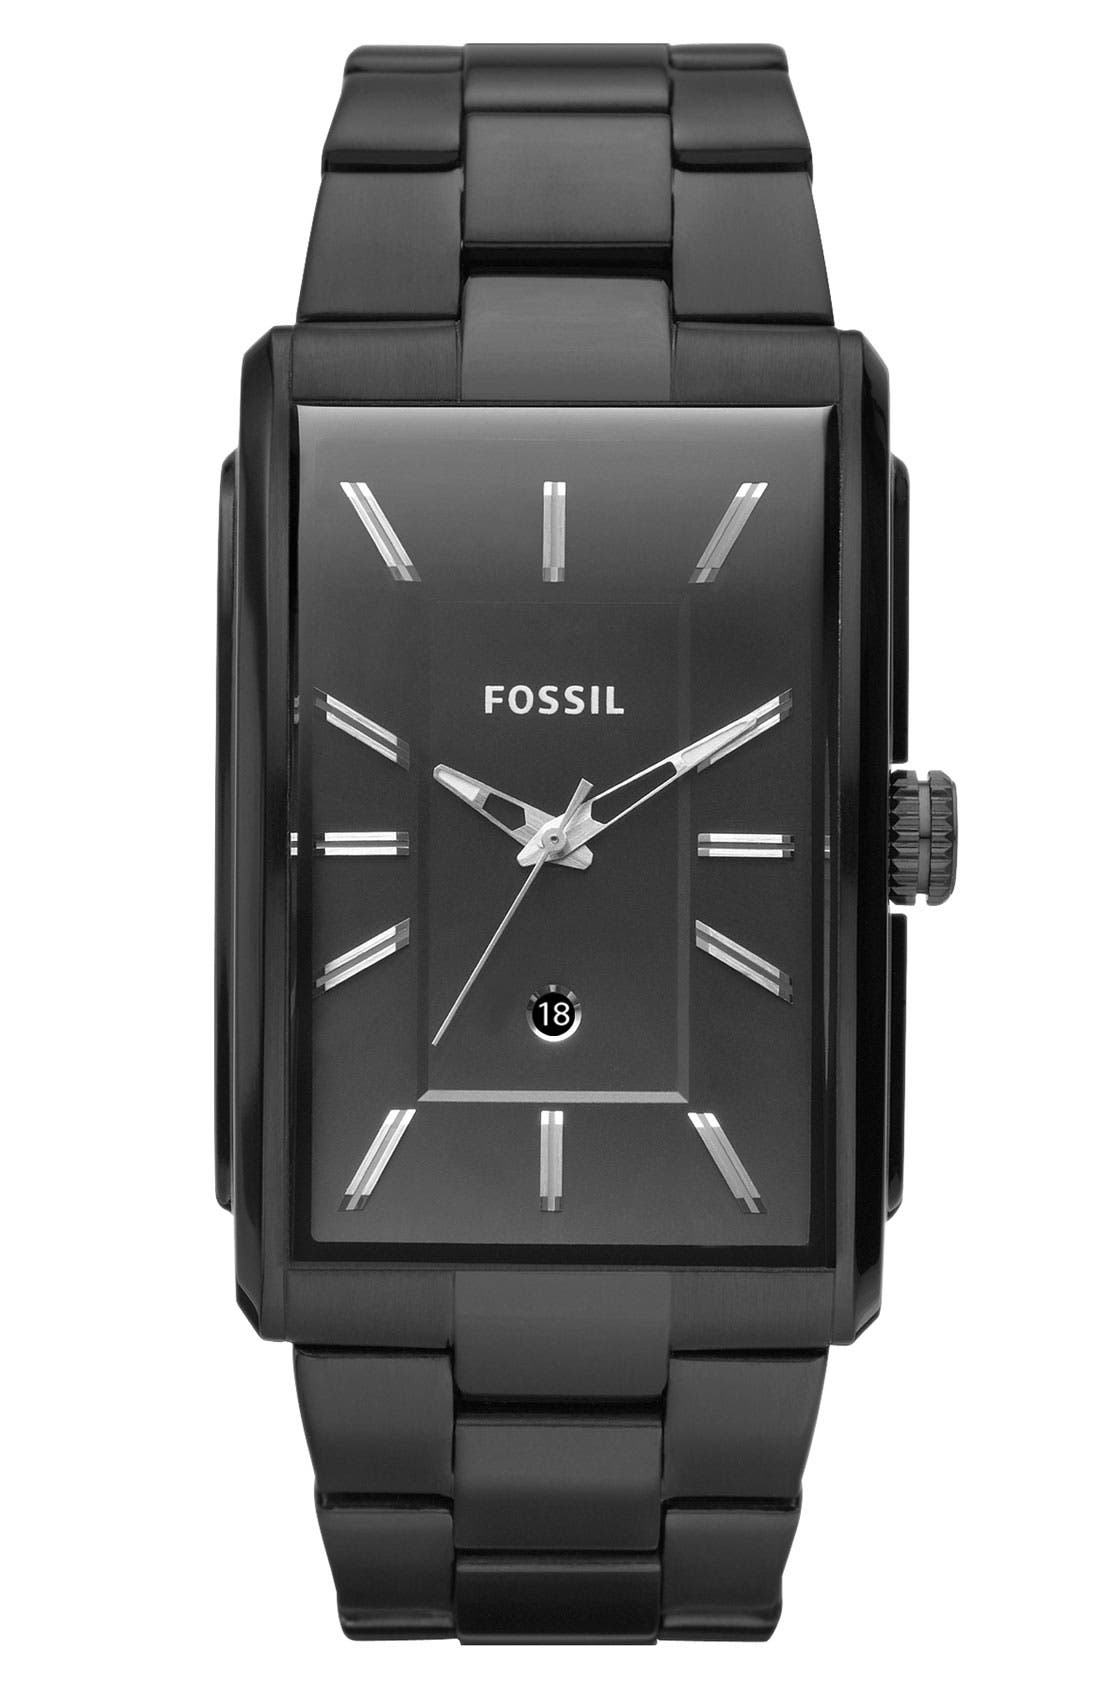 Main Image - Fossil 'Heritage' Rectangular Bracelet Watch, 33mm x 49mm